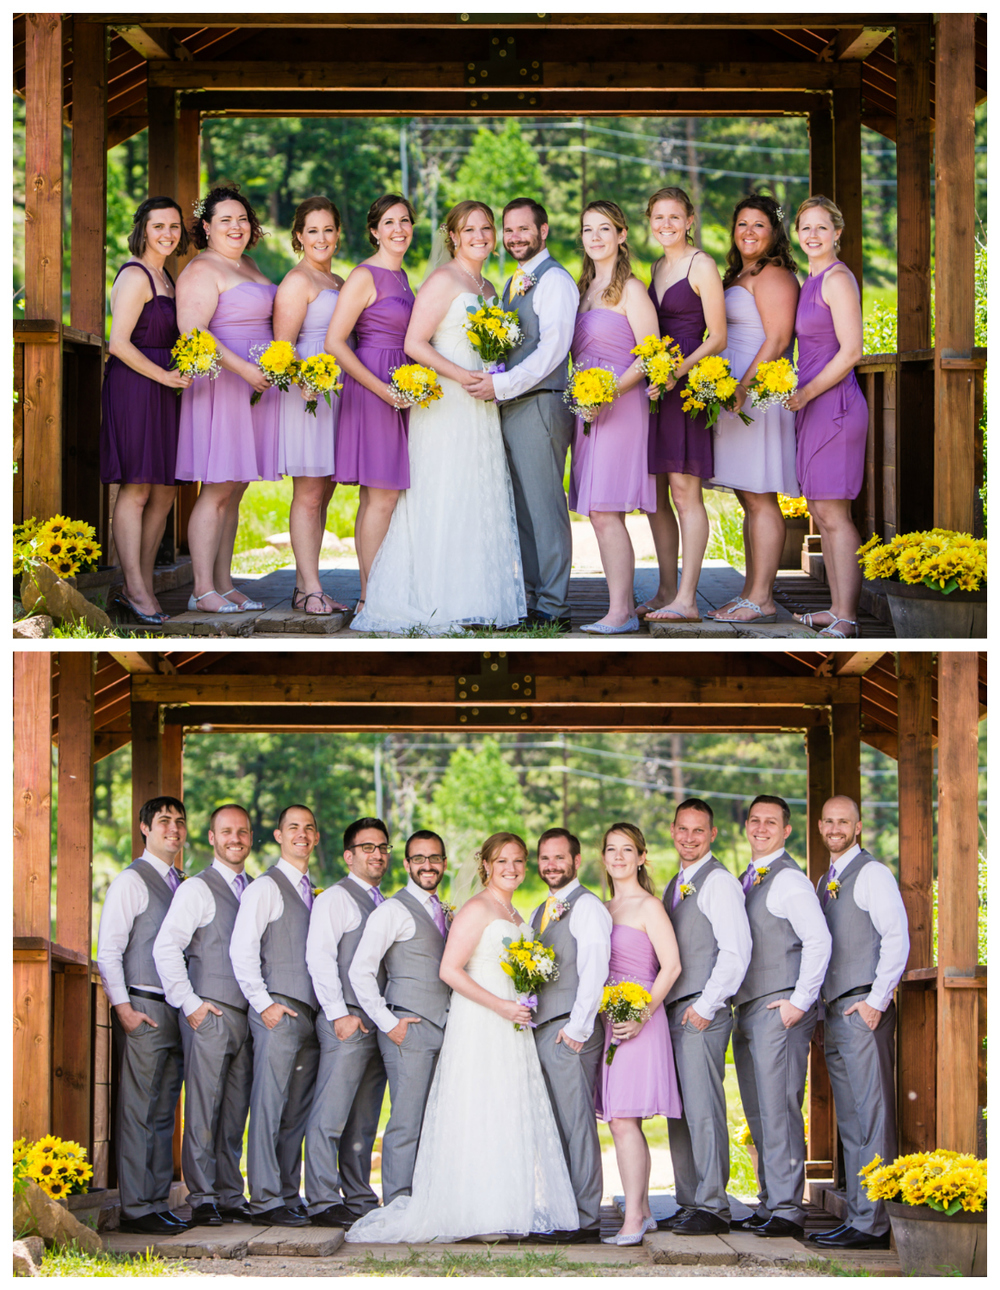 Bridal party. Deer Creek Valley Ranch Wedding. Photographed by JMGant Photography.